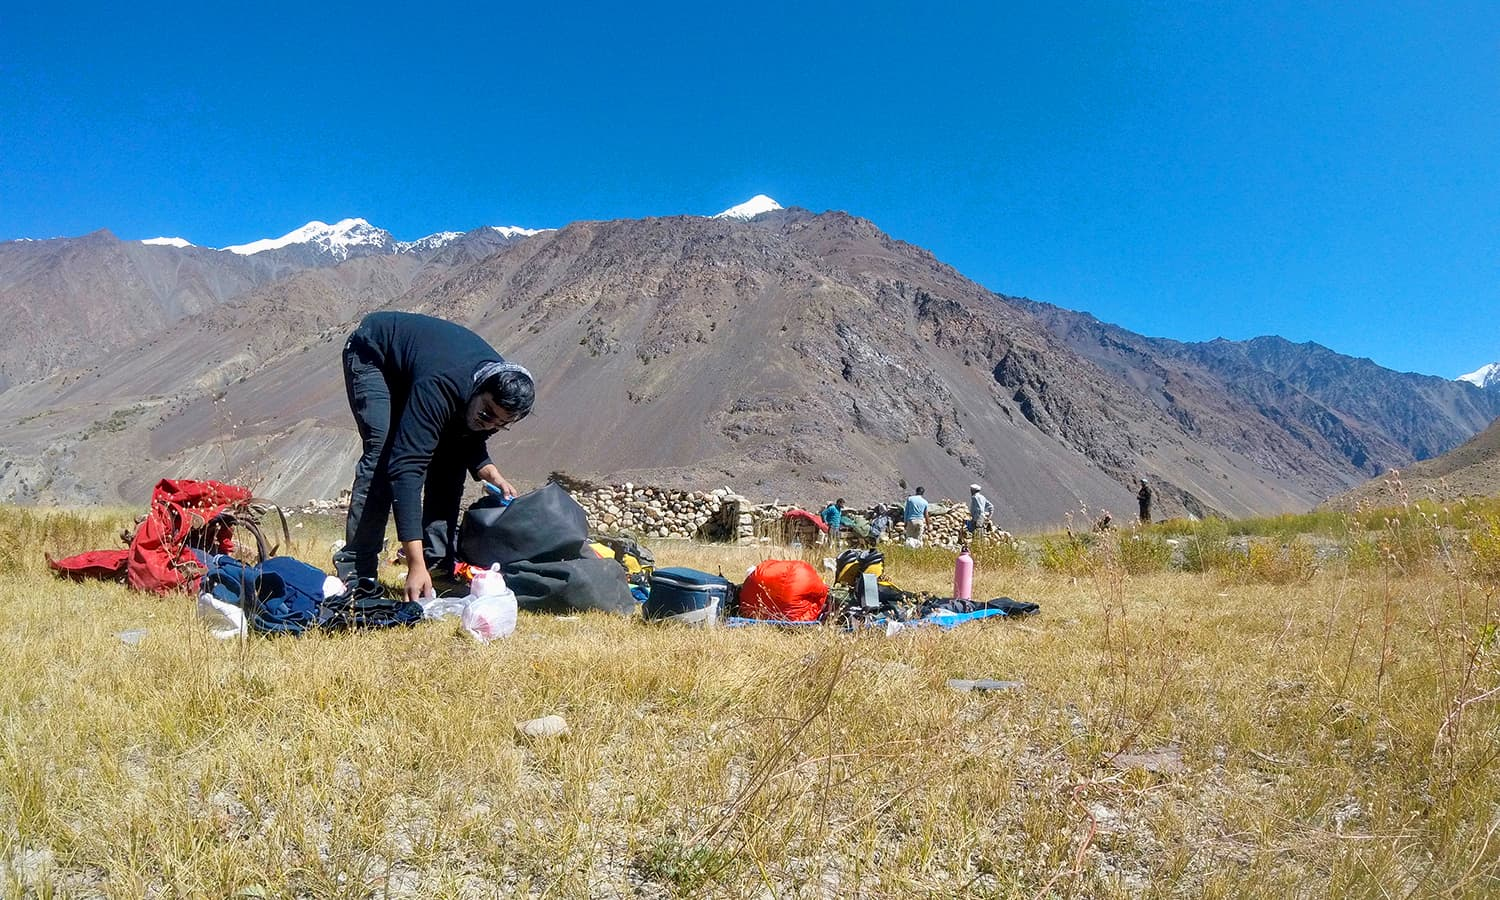 Day 5: Taimoor sifting out the gear we will need for the summit attempt at Dhee base camp.